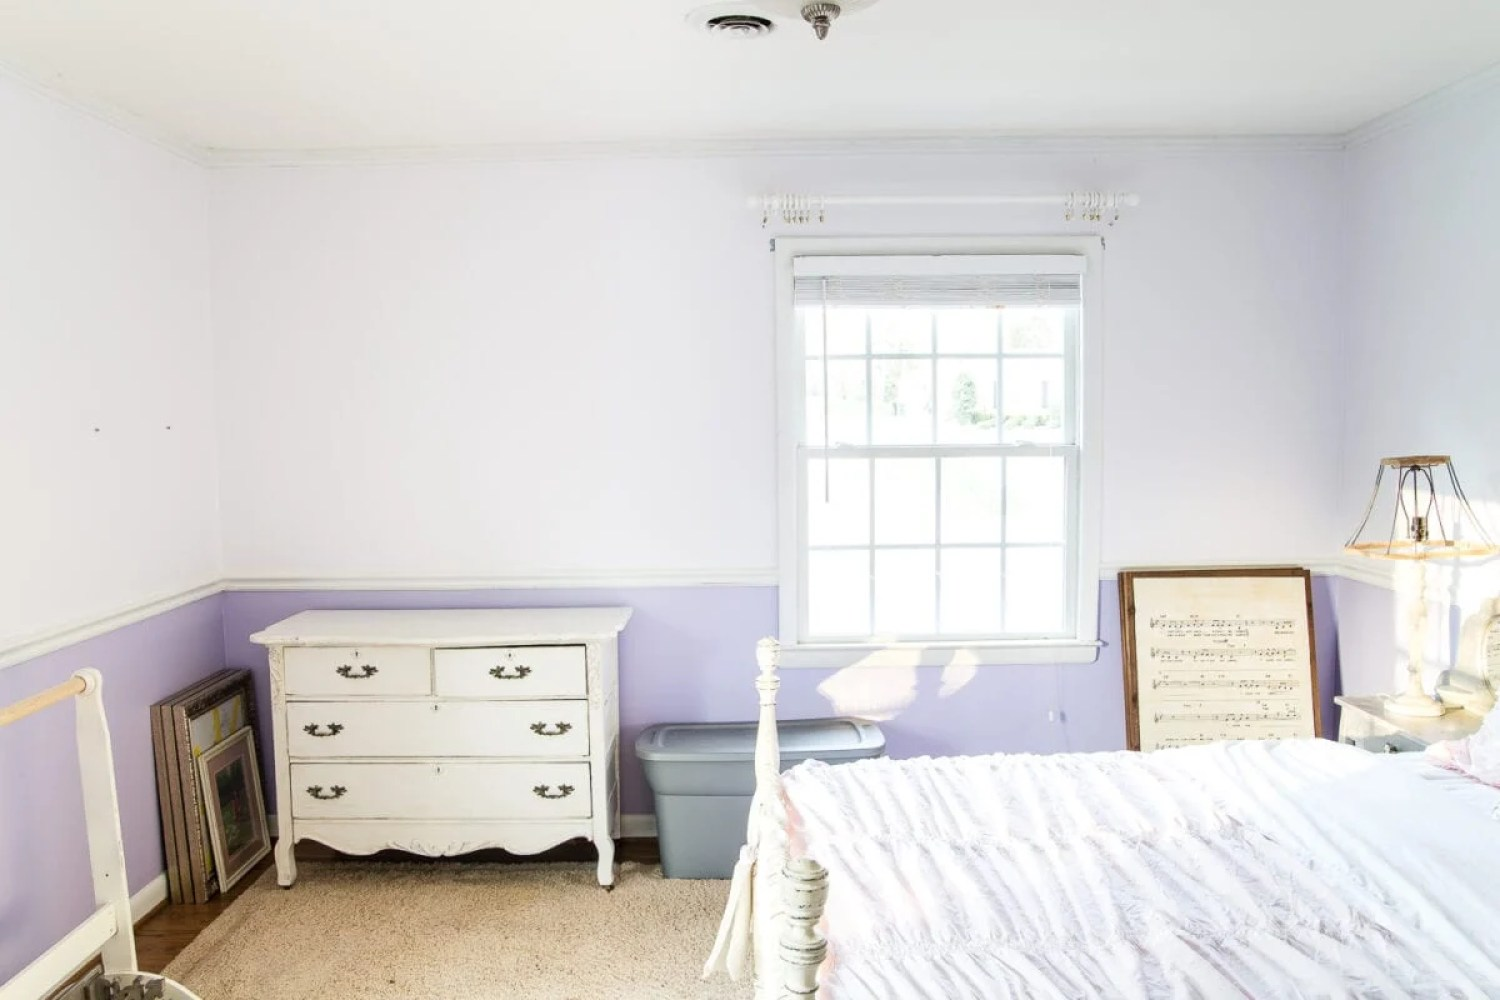 A little girl bedroom makeover with a butterfly theme full of thrifty makeovers, DIYable projects, and Anthropologie style knock-offs. #girlbedroom #littlegirlbedroom #girlroom #littlegirlroom #kidsspaces #kidsdecor #kidsroom #kidsdiy #bedroommakeover #kidsroommakeover #girlbedroommakeover